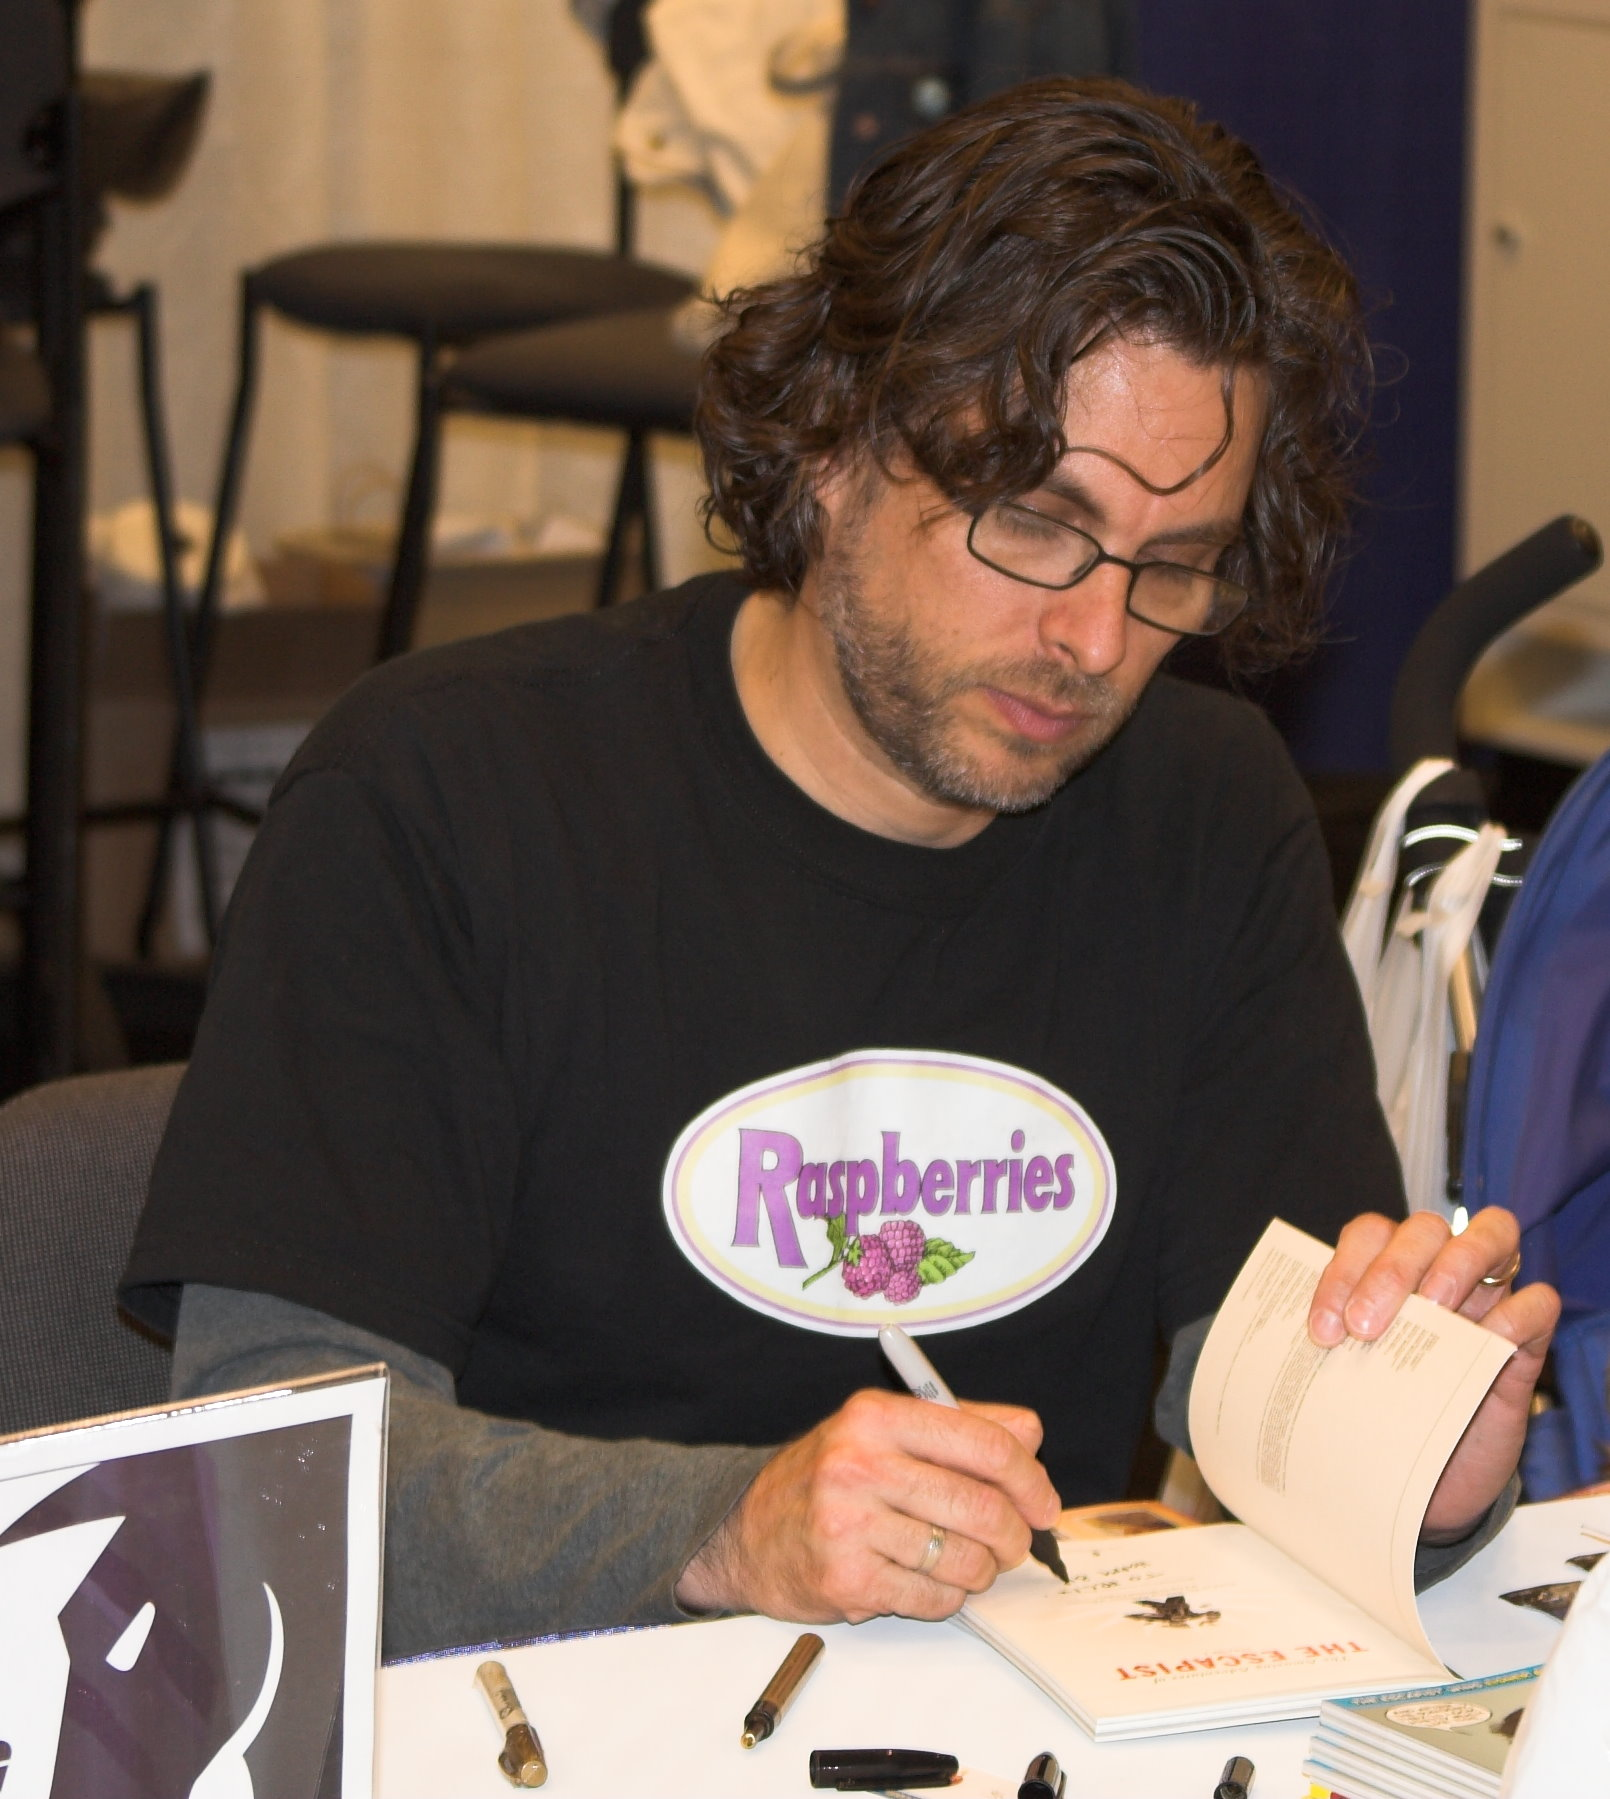 Michael Chabon Photo:By Charlie Reiman (https://www.flickr.com/photos/chairface/99979664) [CC BY-SA 2.0 (https://creativecommons.org/licenses/by-sa/2.0)], via Wikimedia Commons